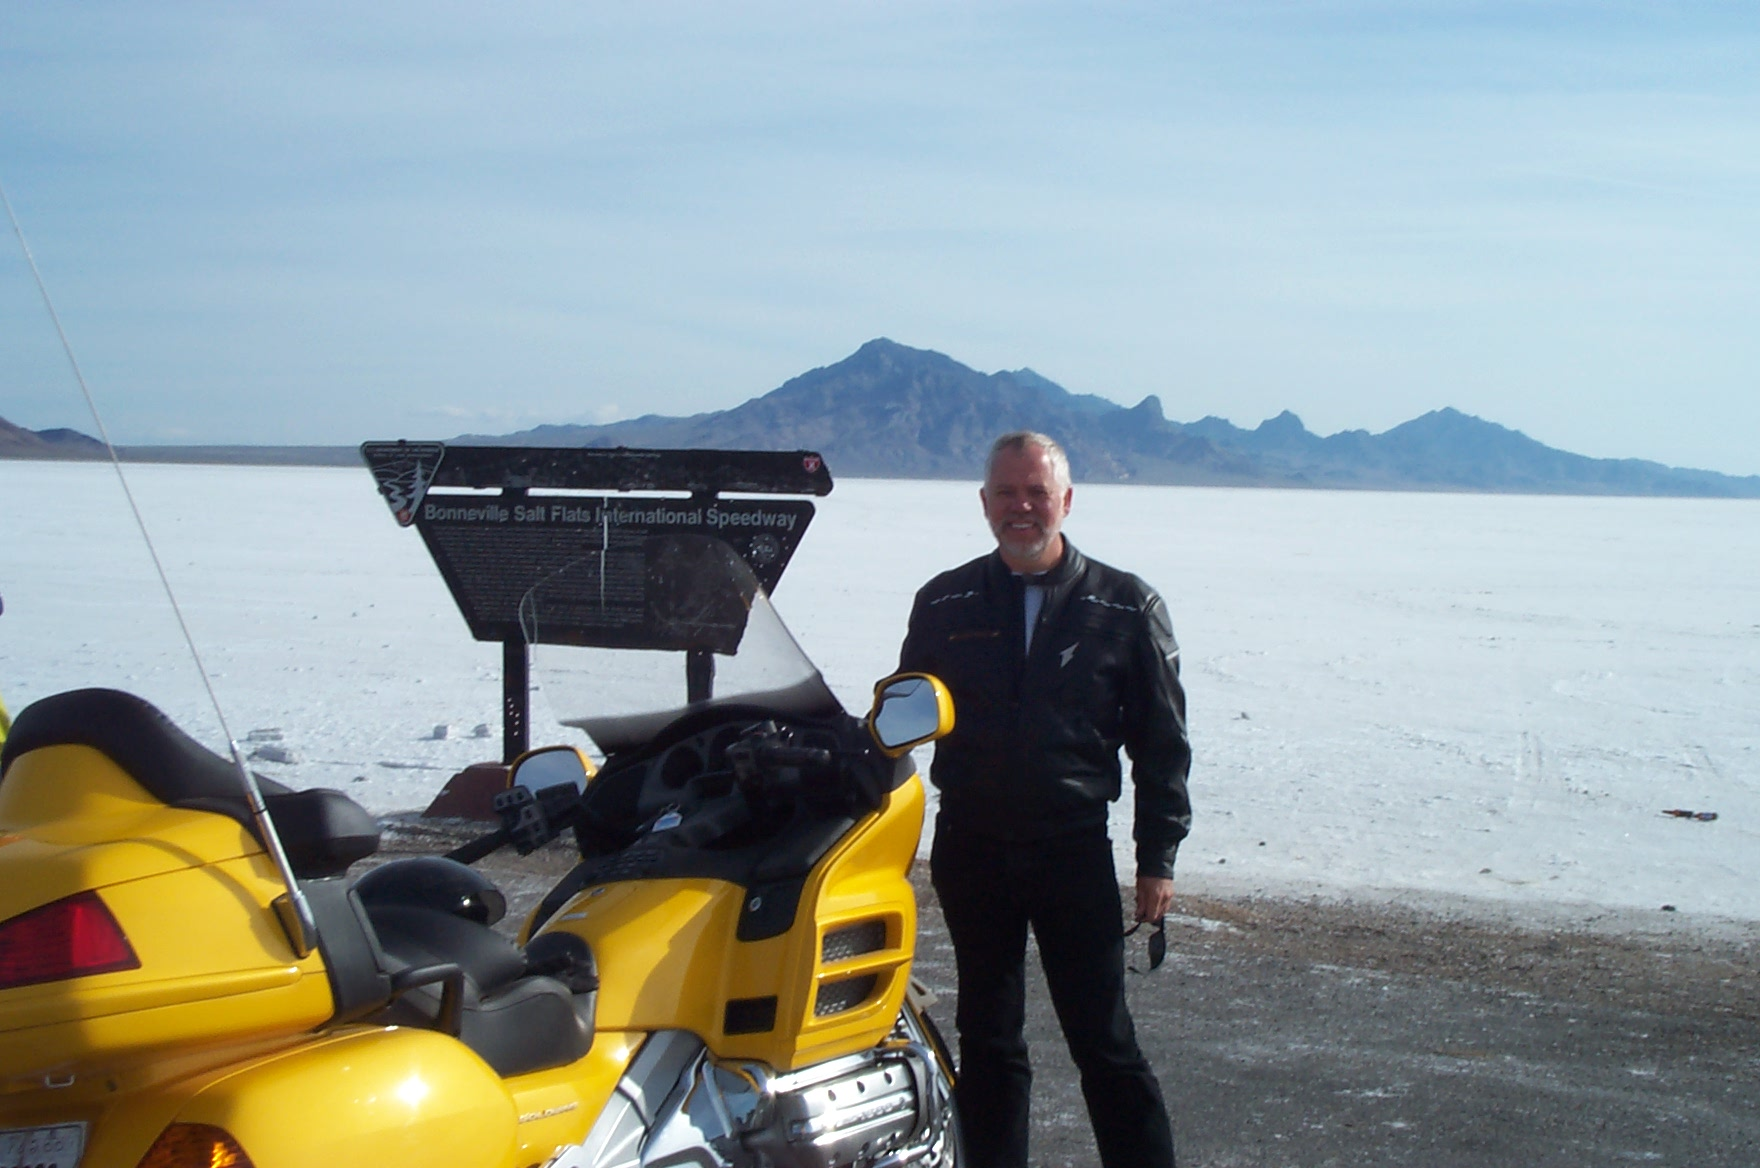 Man with yellow motorcycle